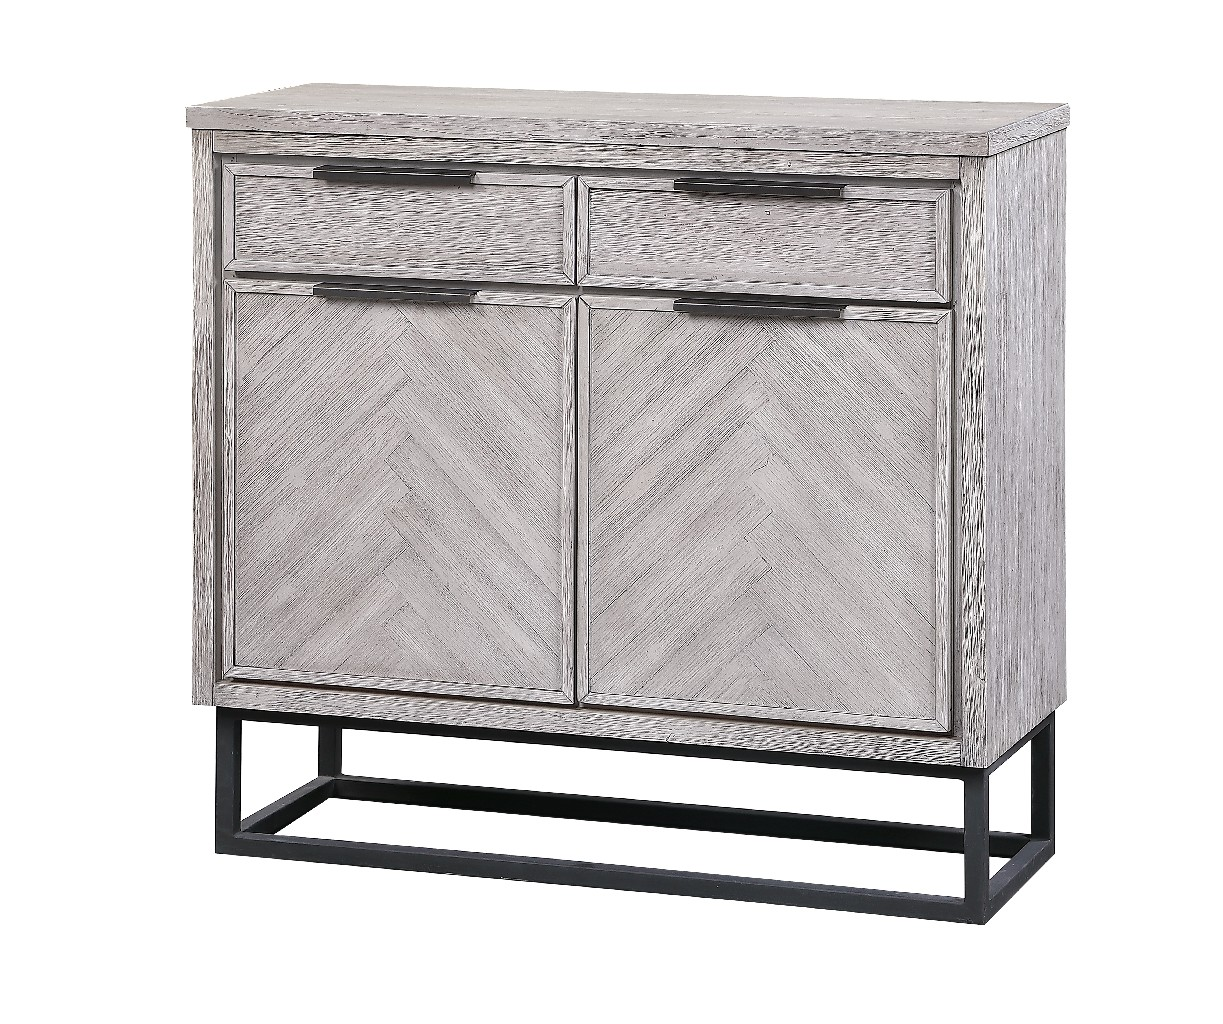 Aspen Court II Two Door Two Drawer Cabinet - Coast to Coast Imports 48208